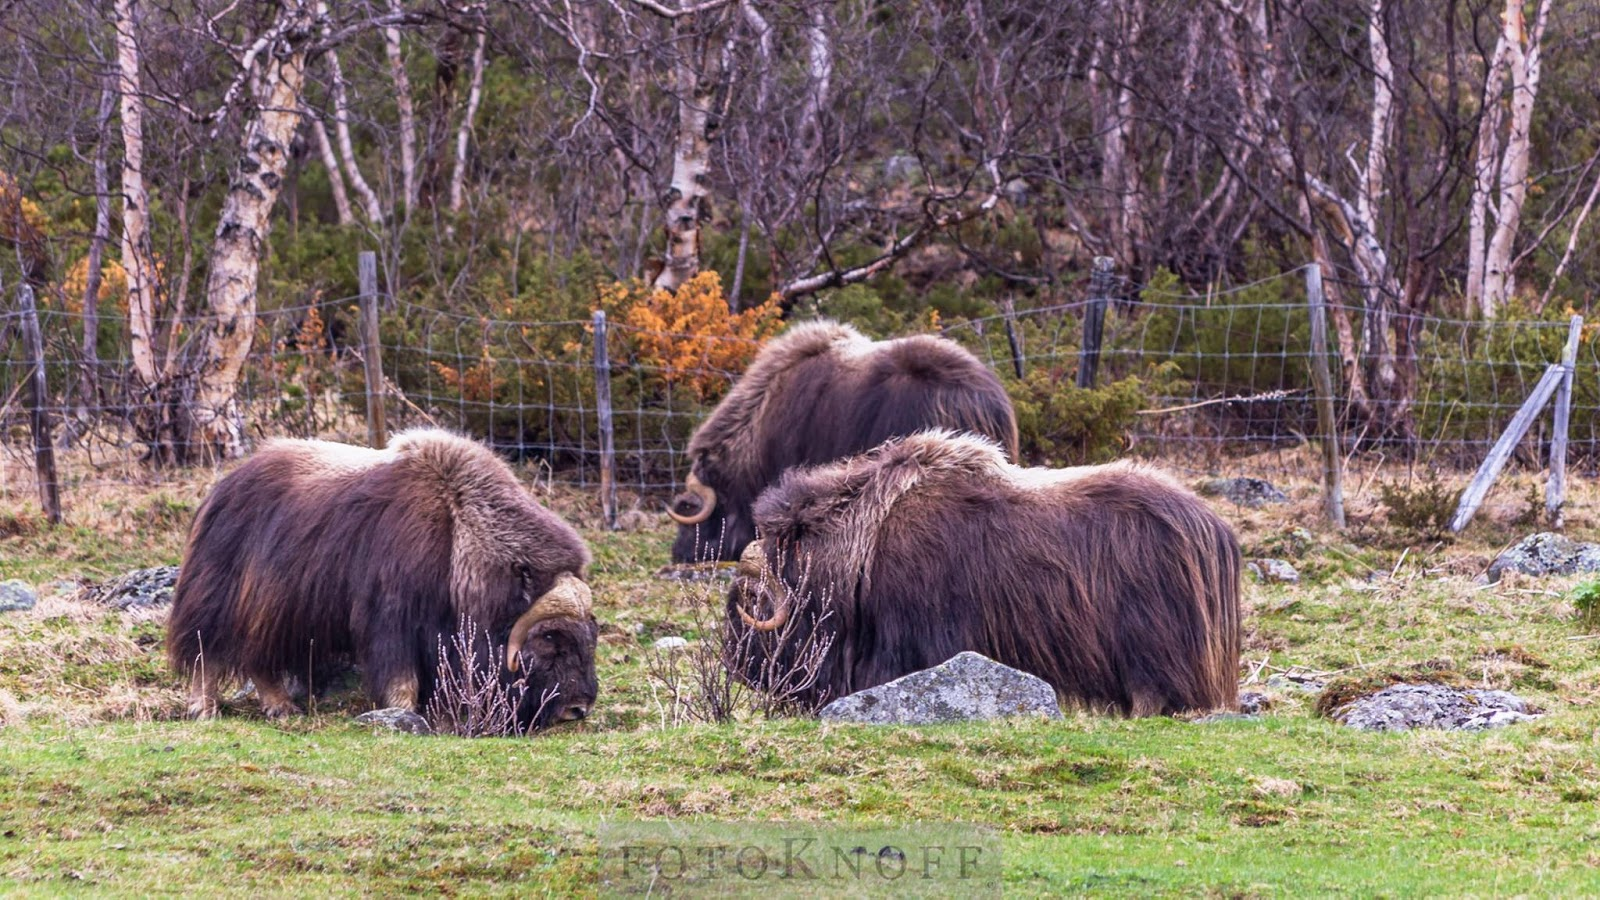 Musk oxen near Oppdal (Photo Sven-Erik Knoff)